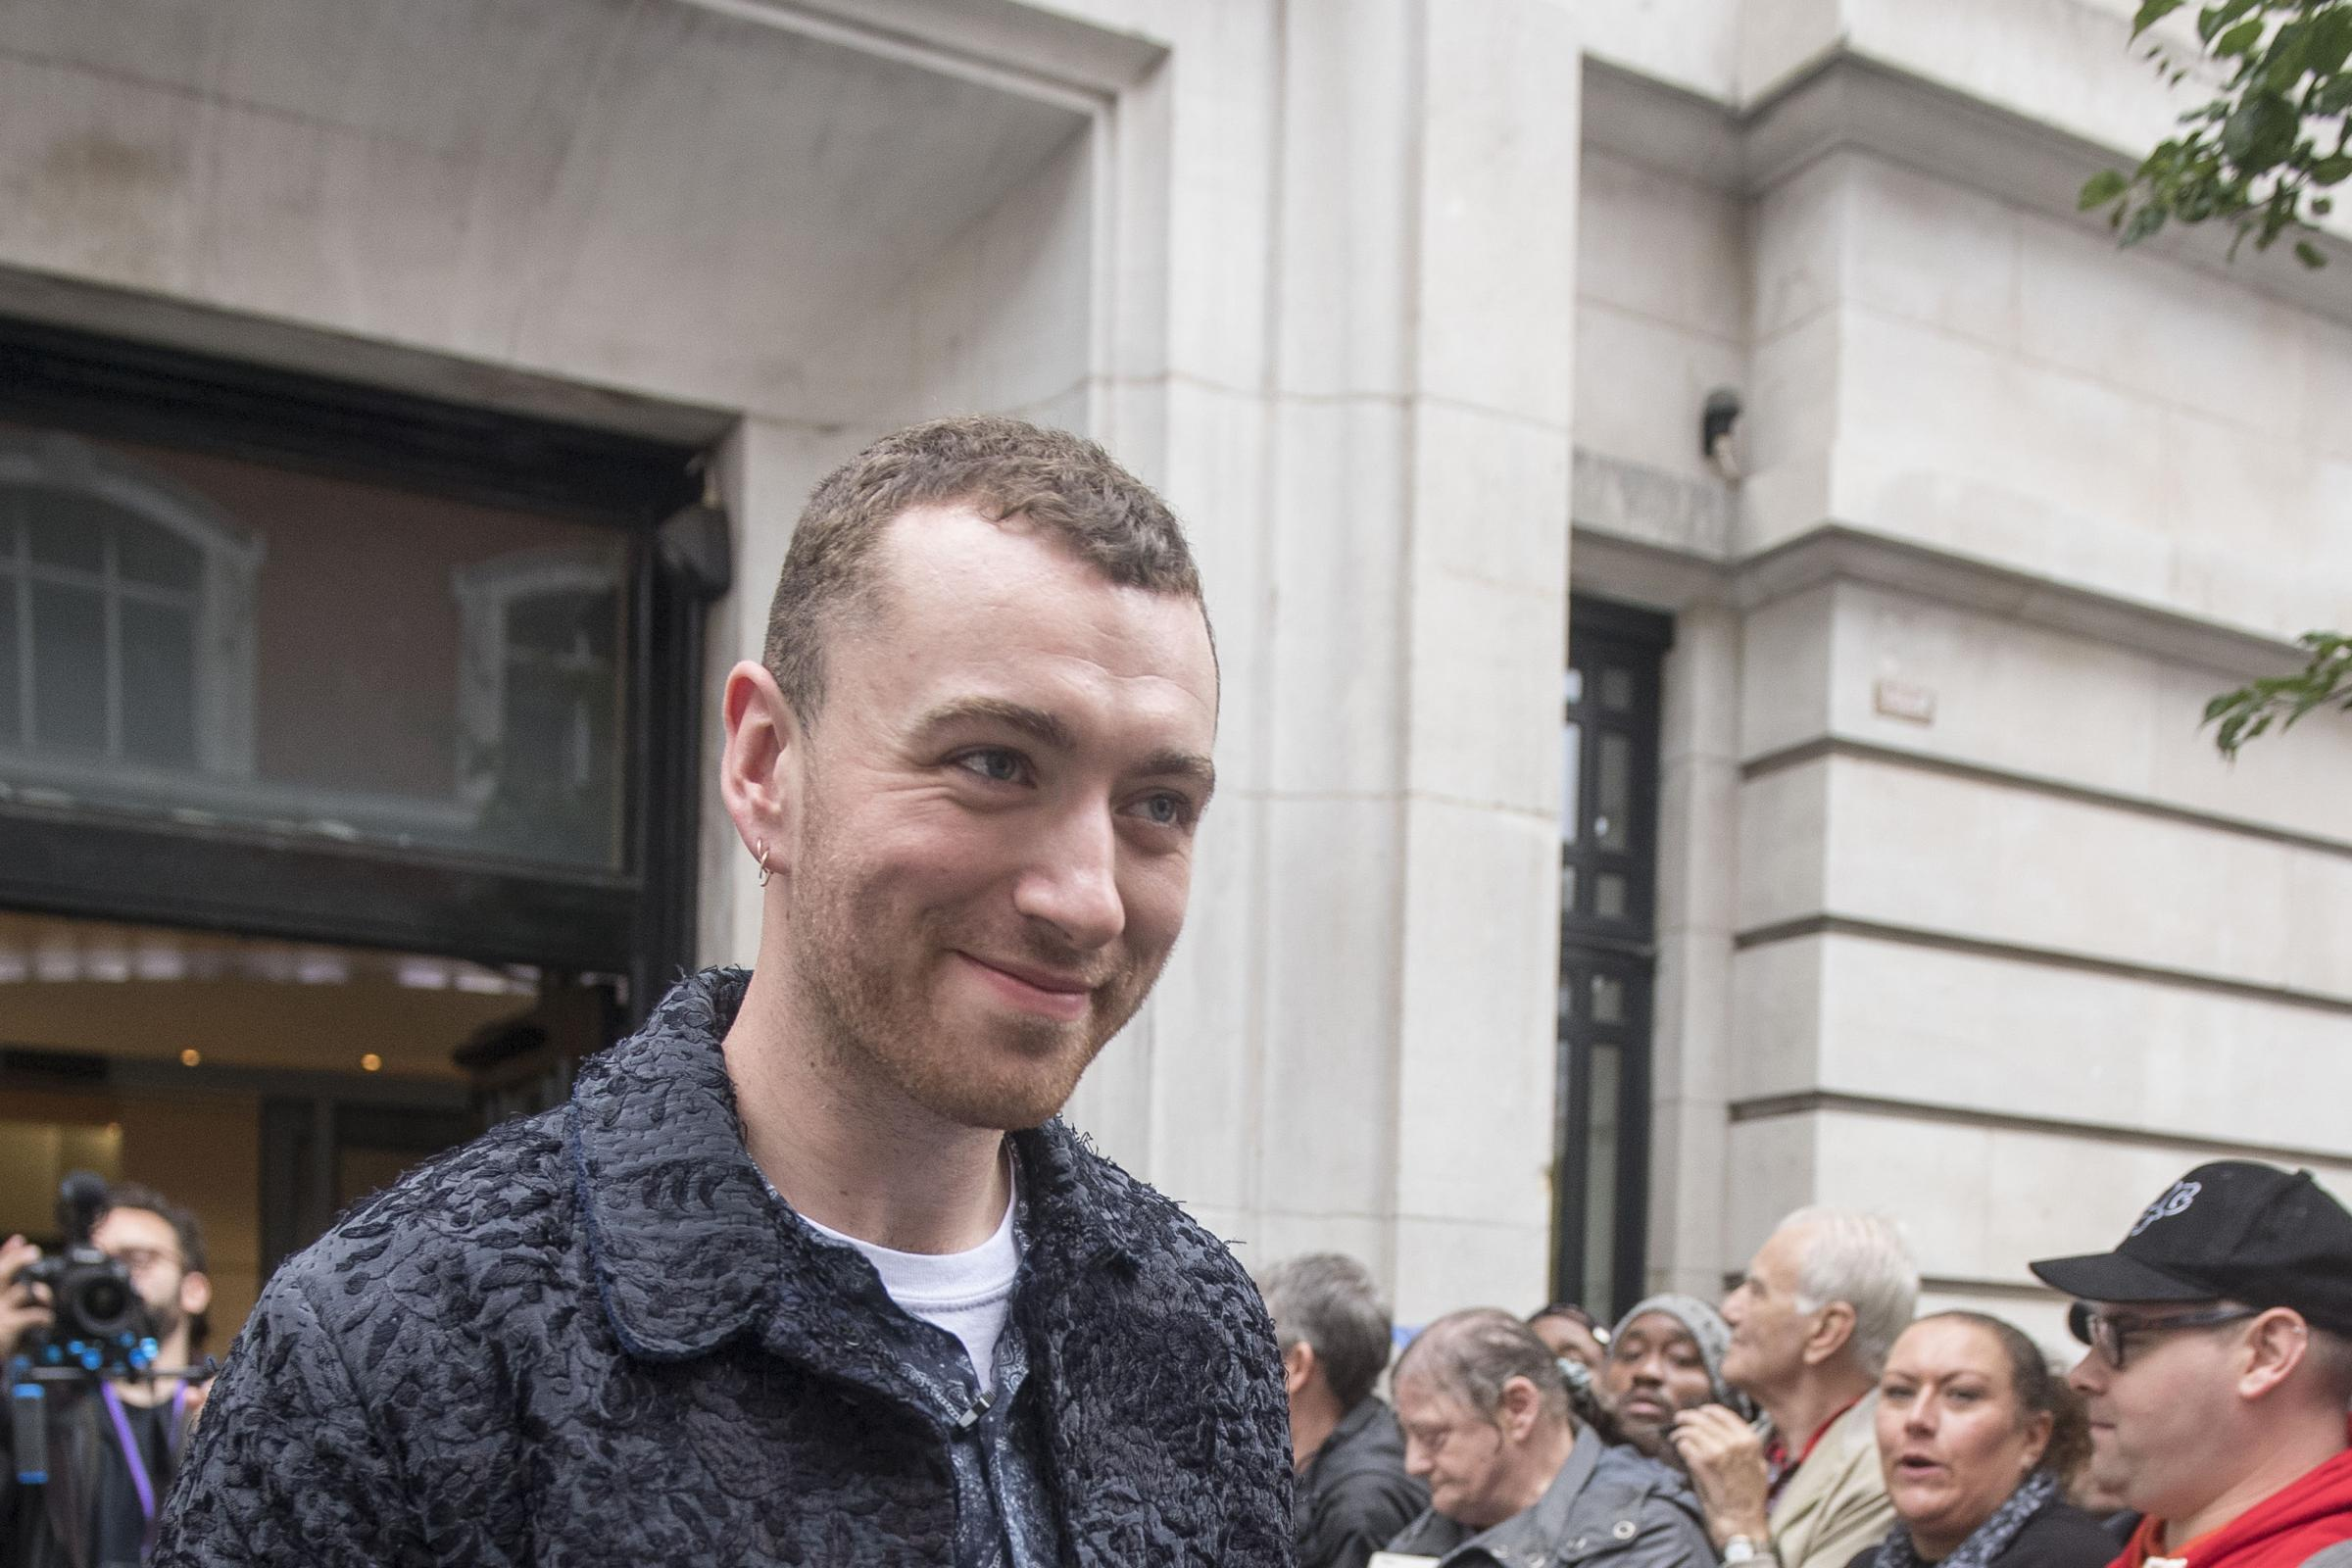 Sam Smith outside BBC Broadcasting House in London, where he appeared on on BBC Radio 2.